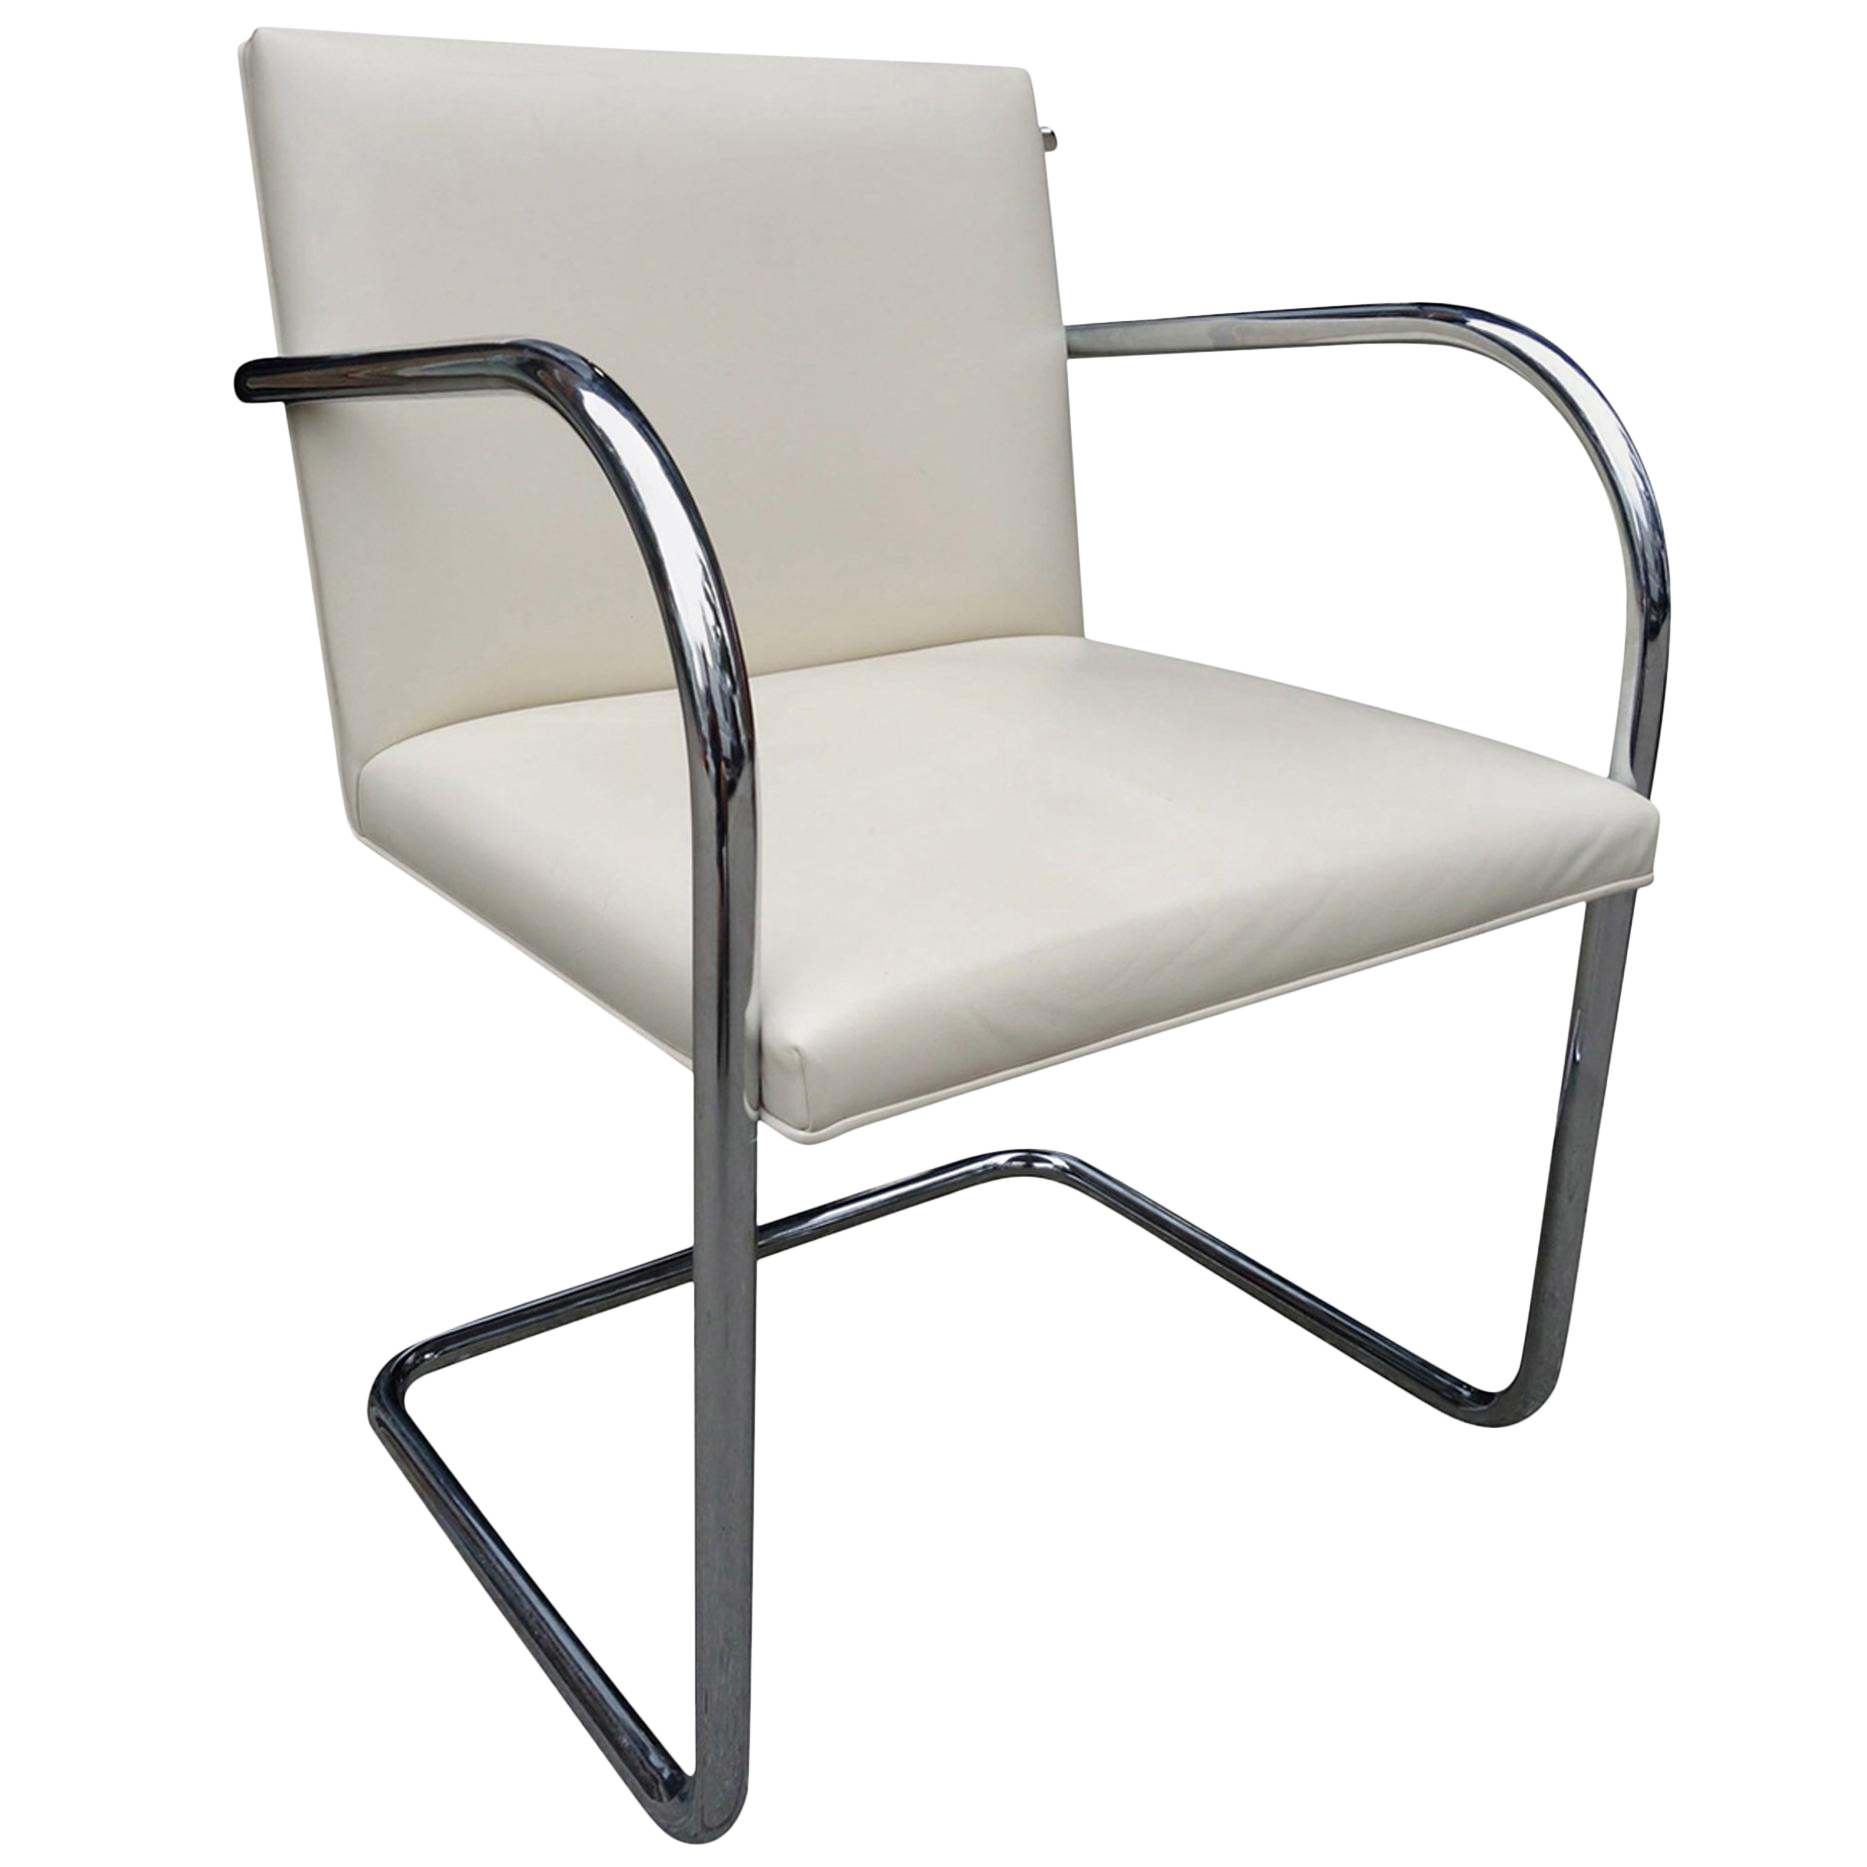 Mid Century Knoll Brno Chairs By Mies Van Der Rohe In White Chairish